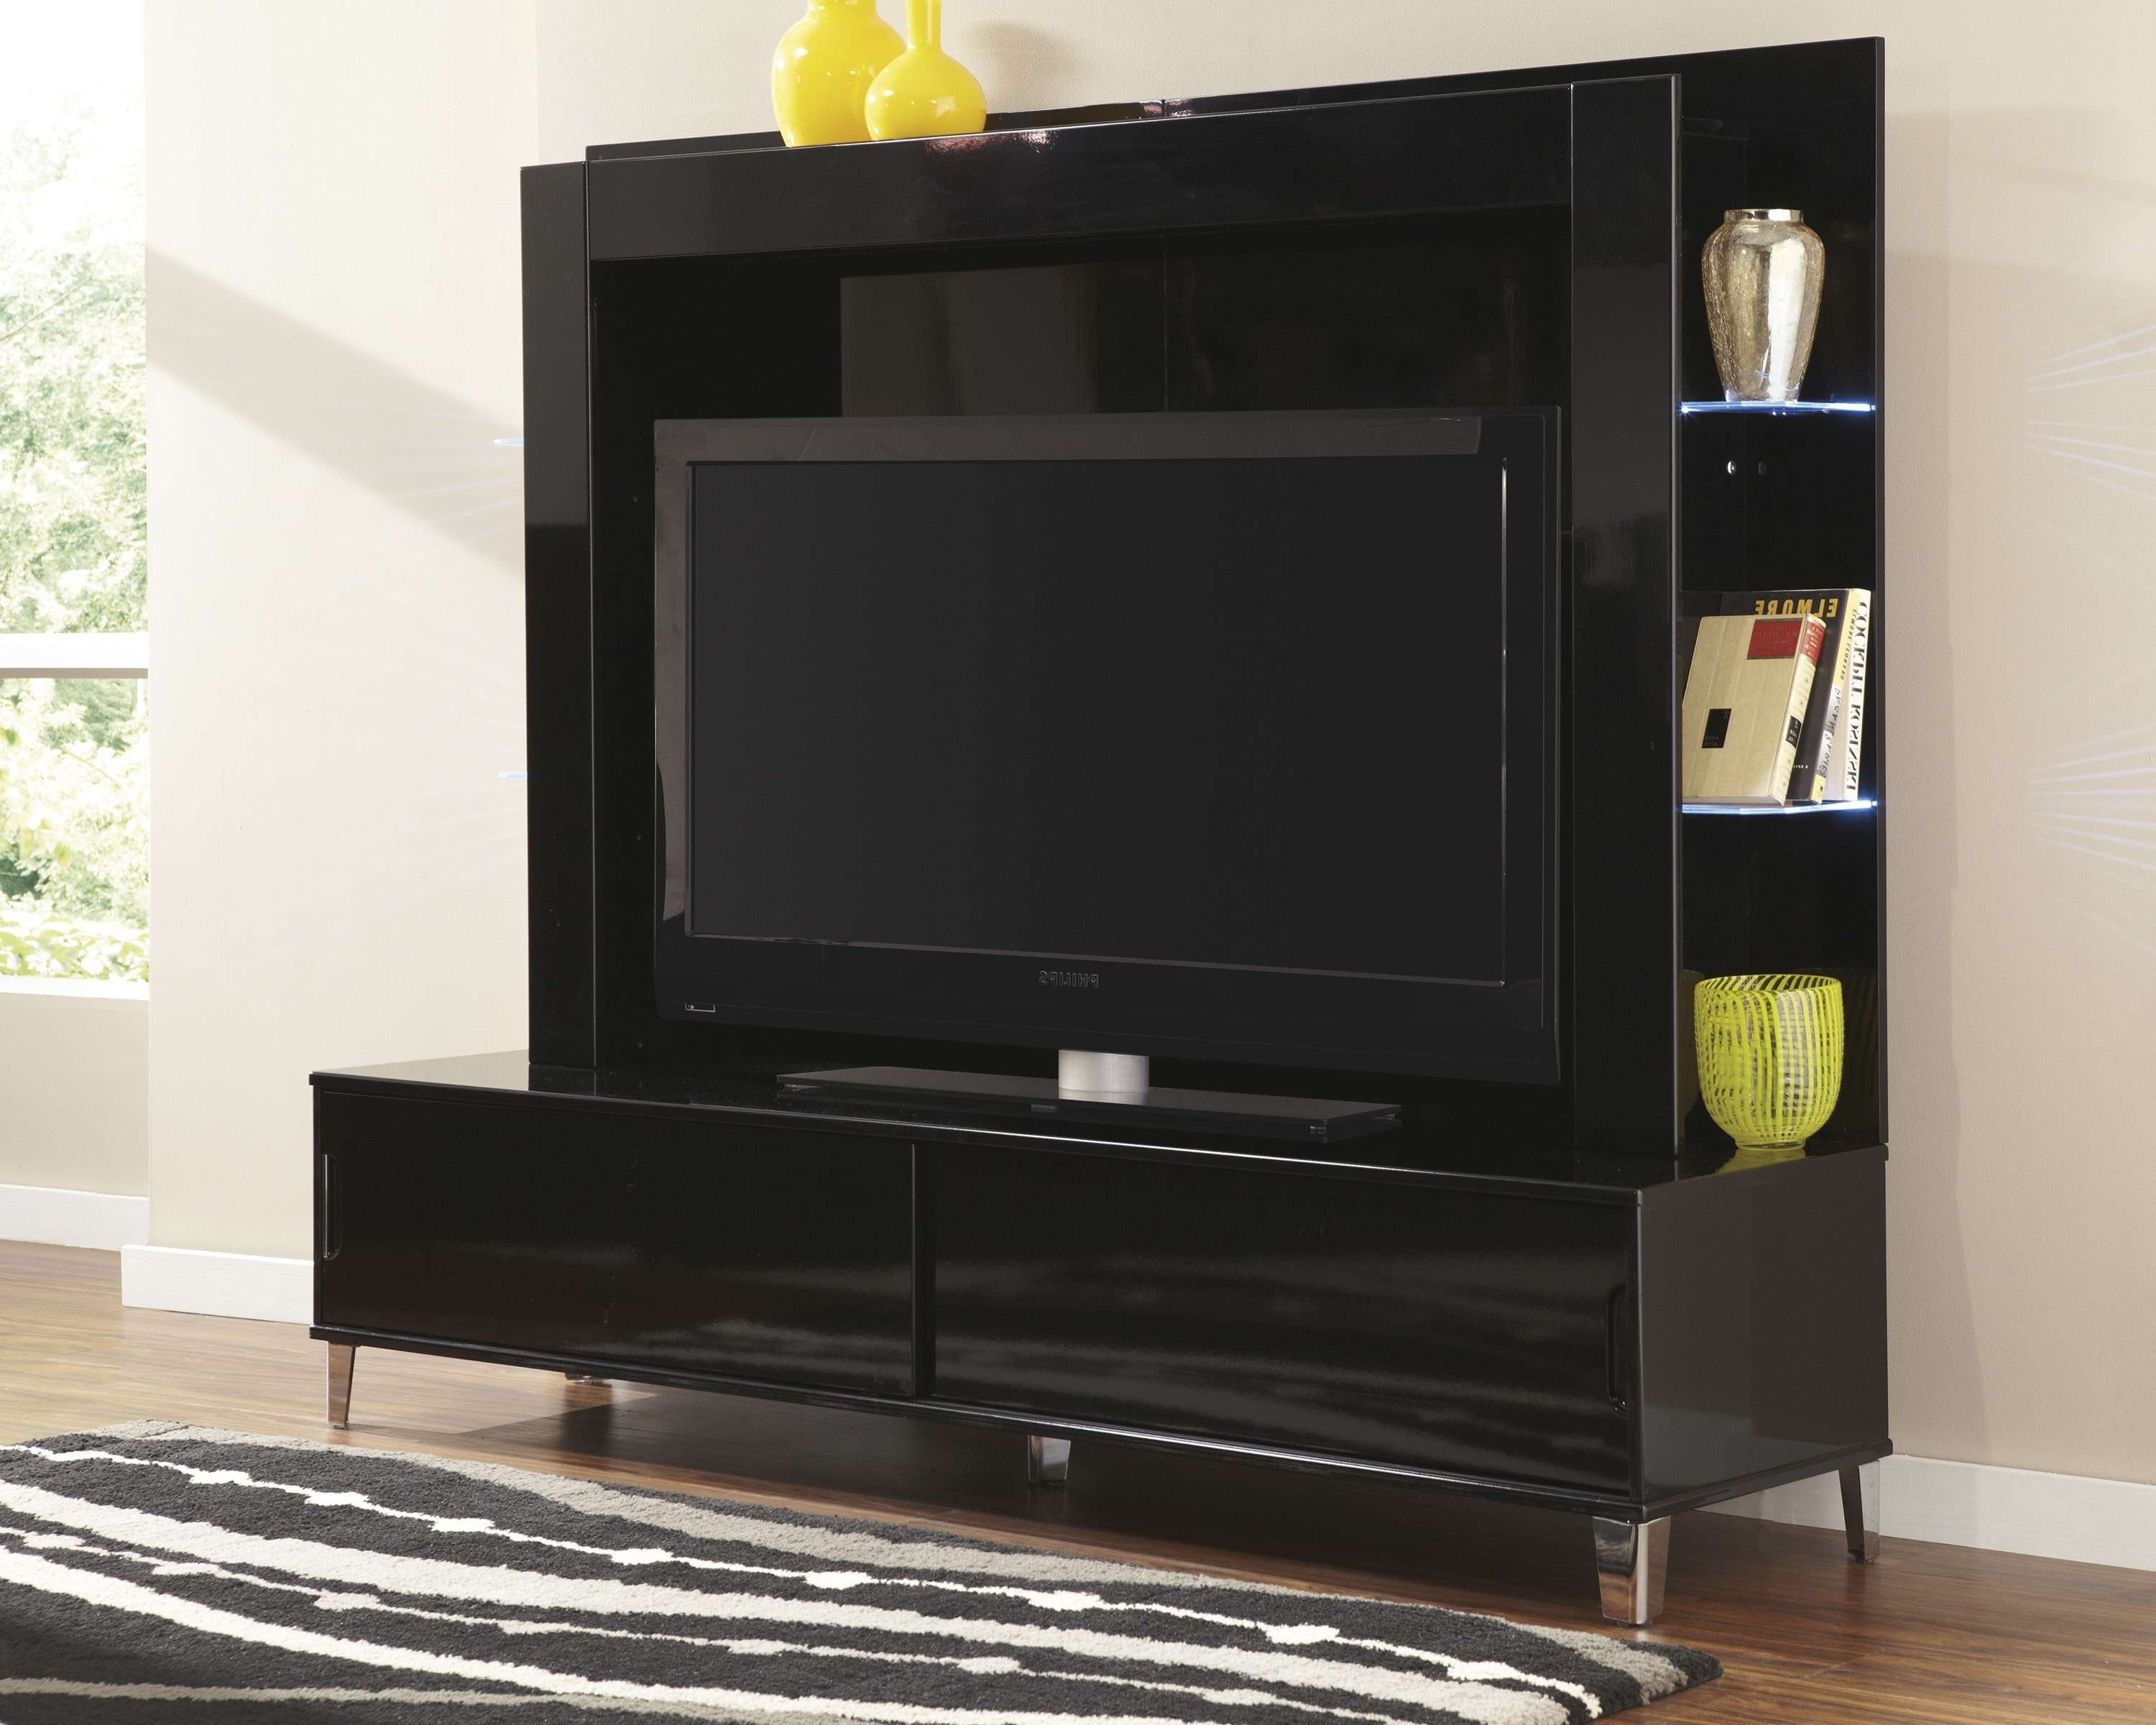 Bedrooms : Exciting Flat Screen Tv Mount Stand Cream Wall Wooden Inside Corner Tv Cabinets For Flat Screens With Doors (View 18 of 20)